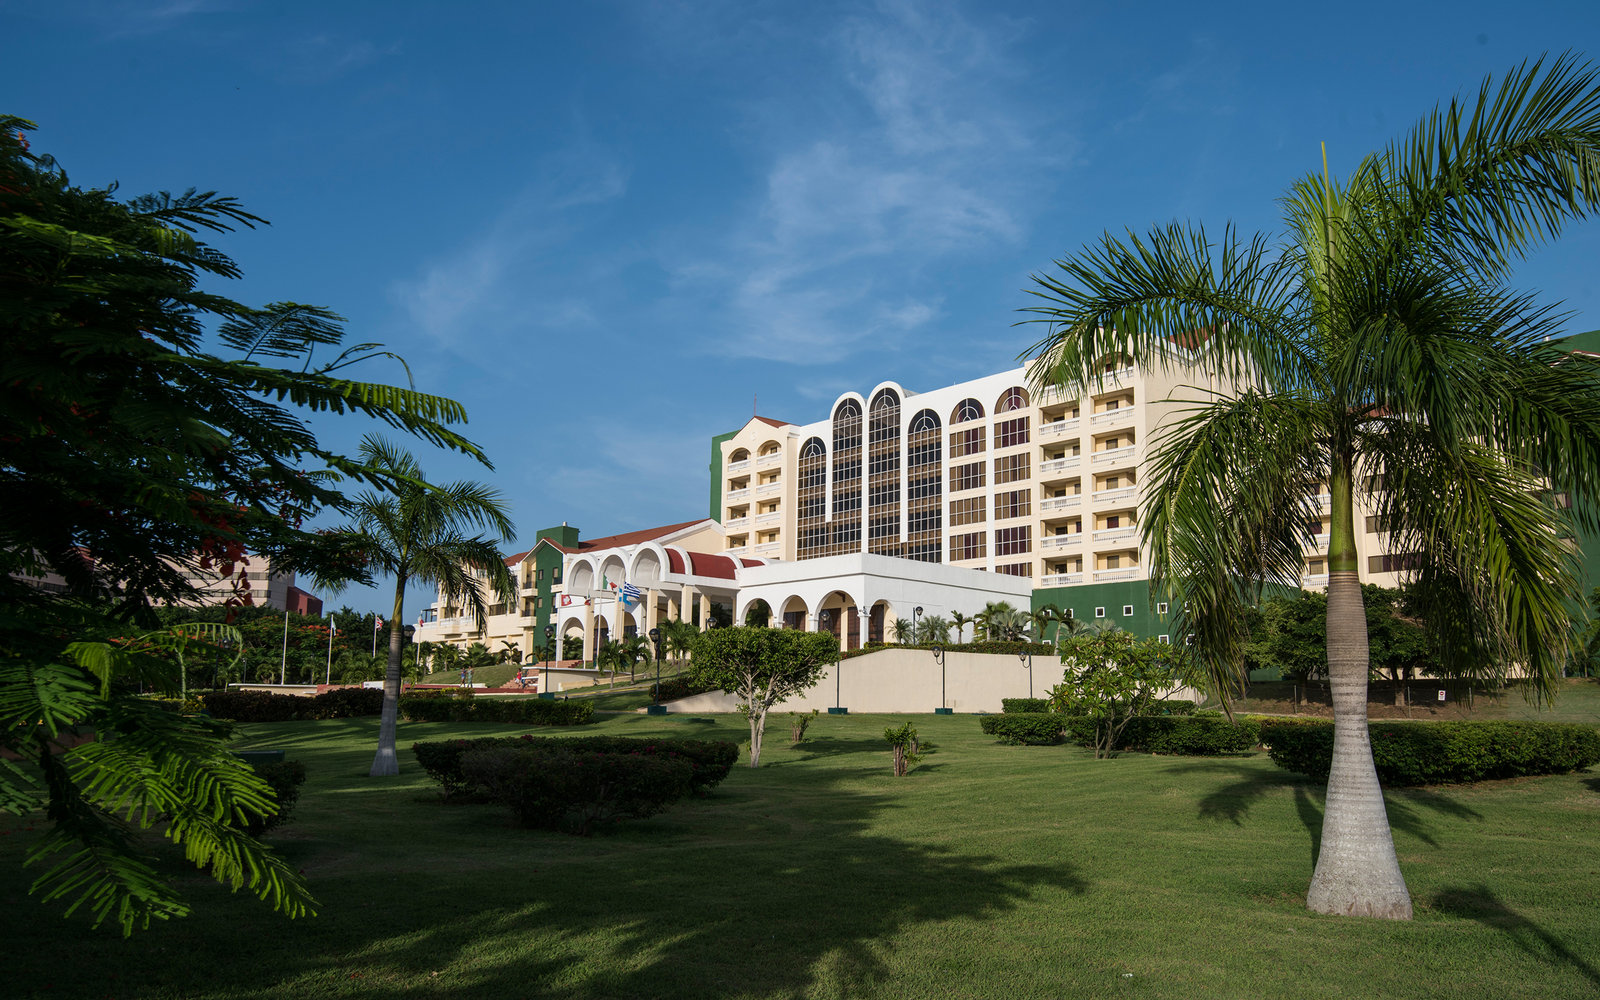 American Hotel to Open in Cuba